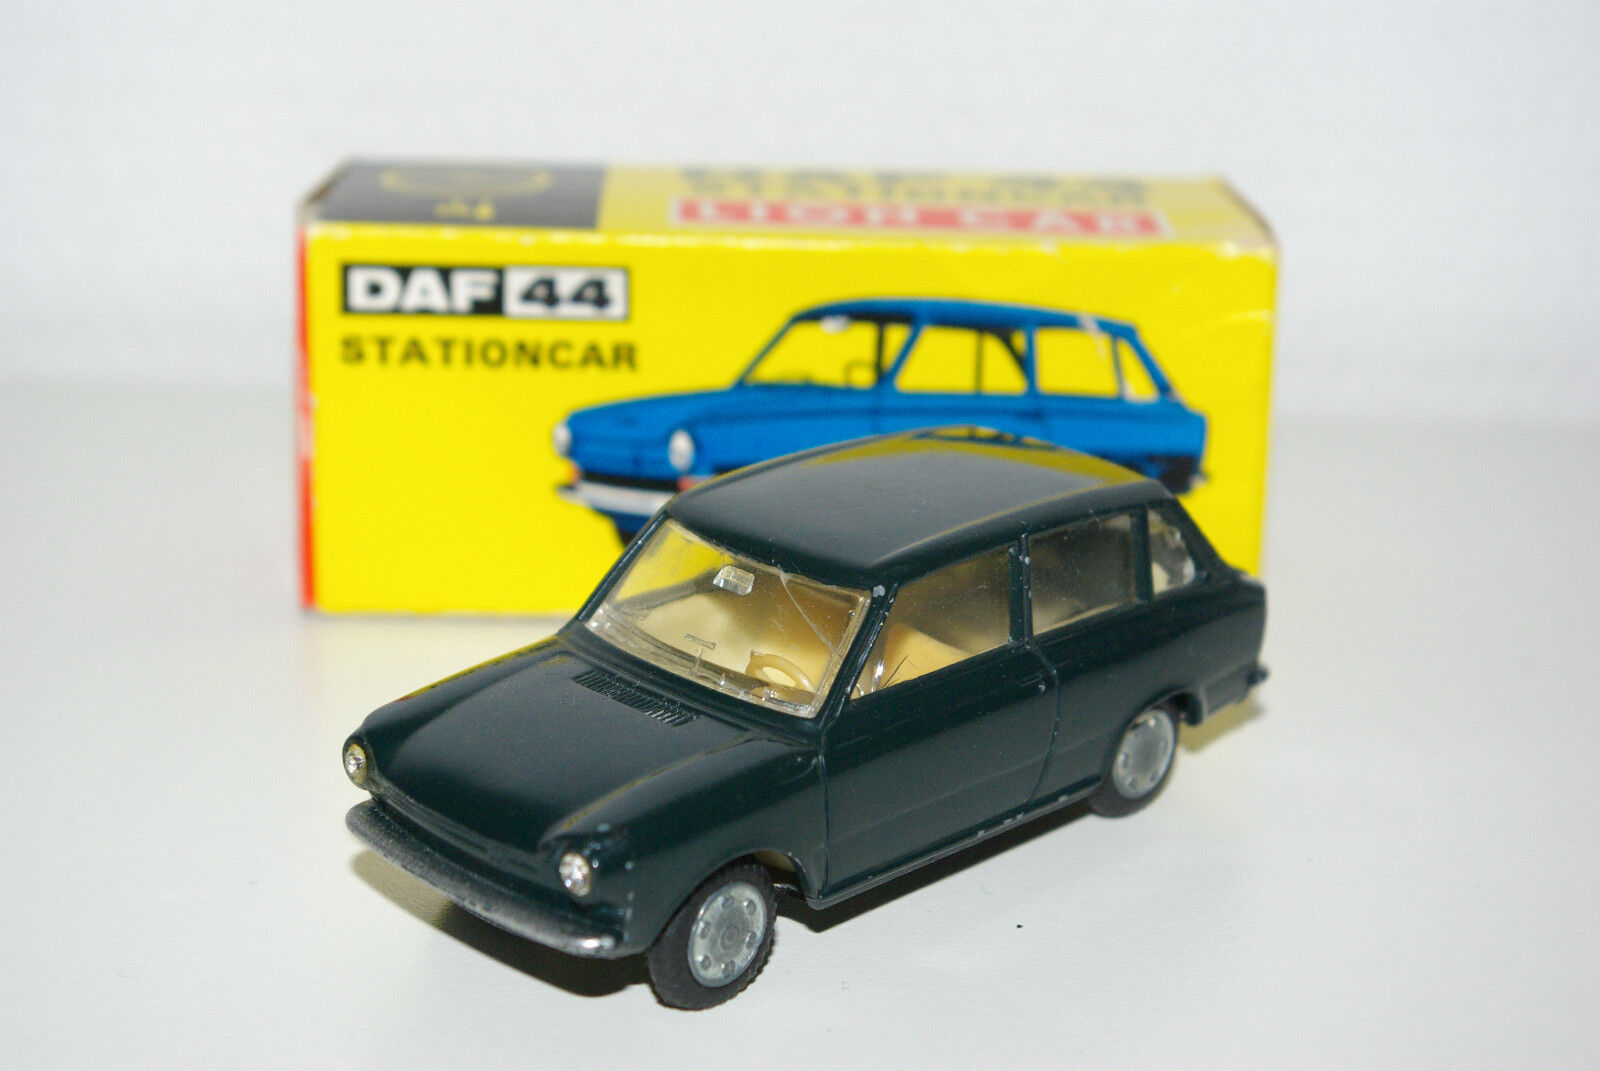 LION CAR DAF 44 STATION STC VARIOMATIC DARK vert VN MINT BOXED RARE SELTEN